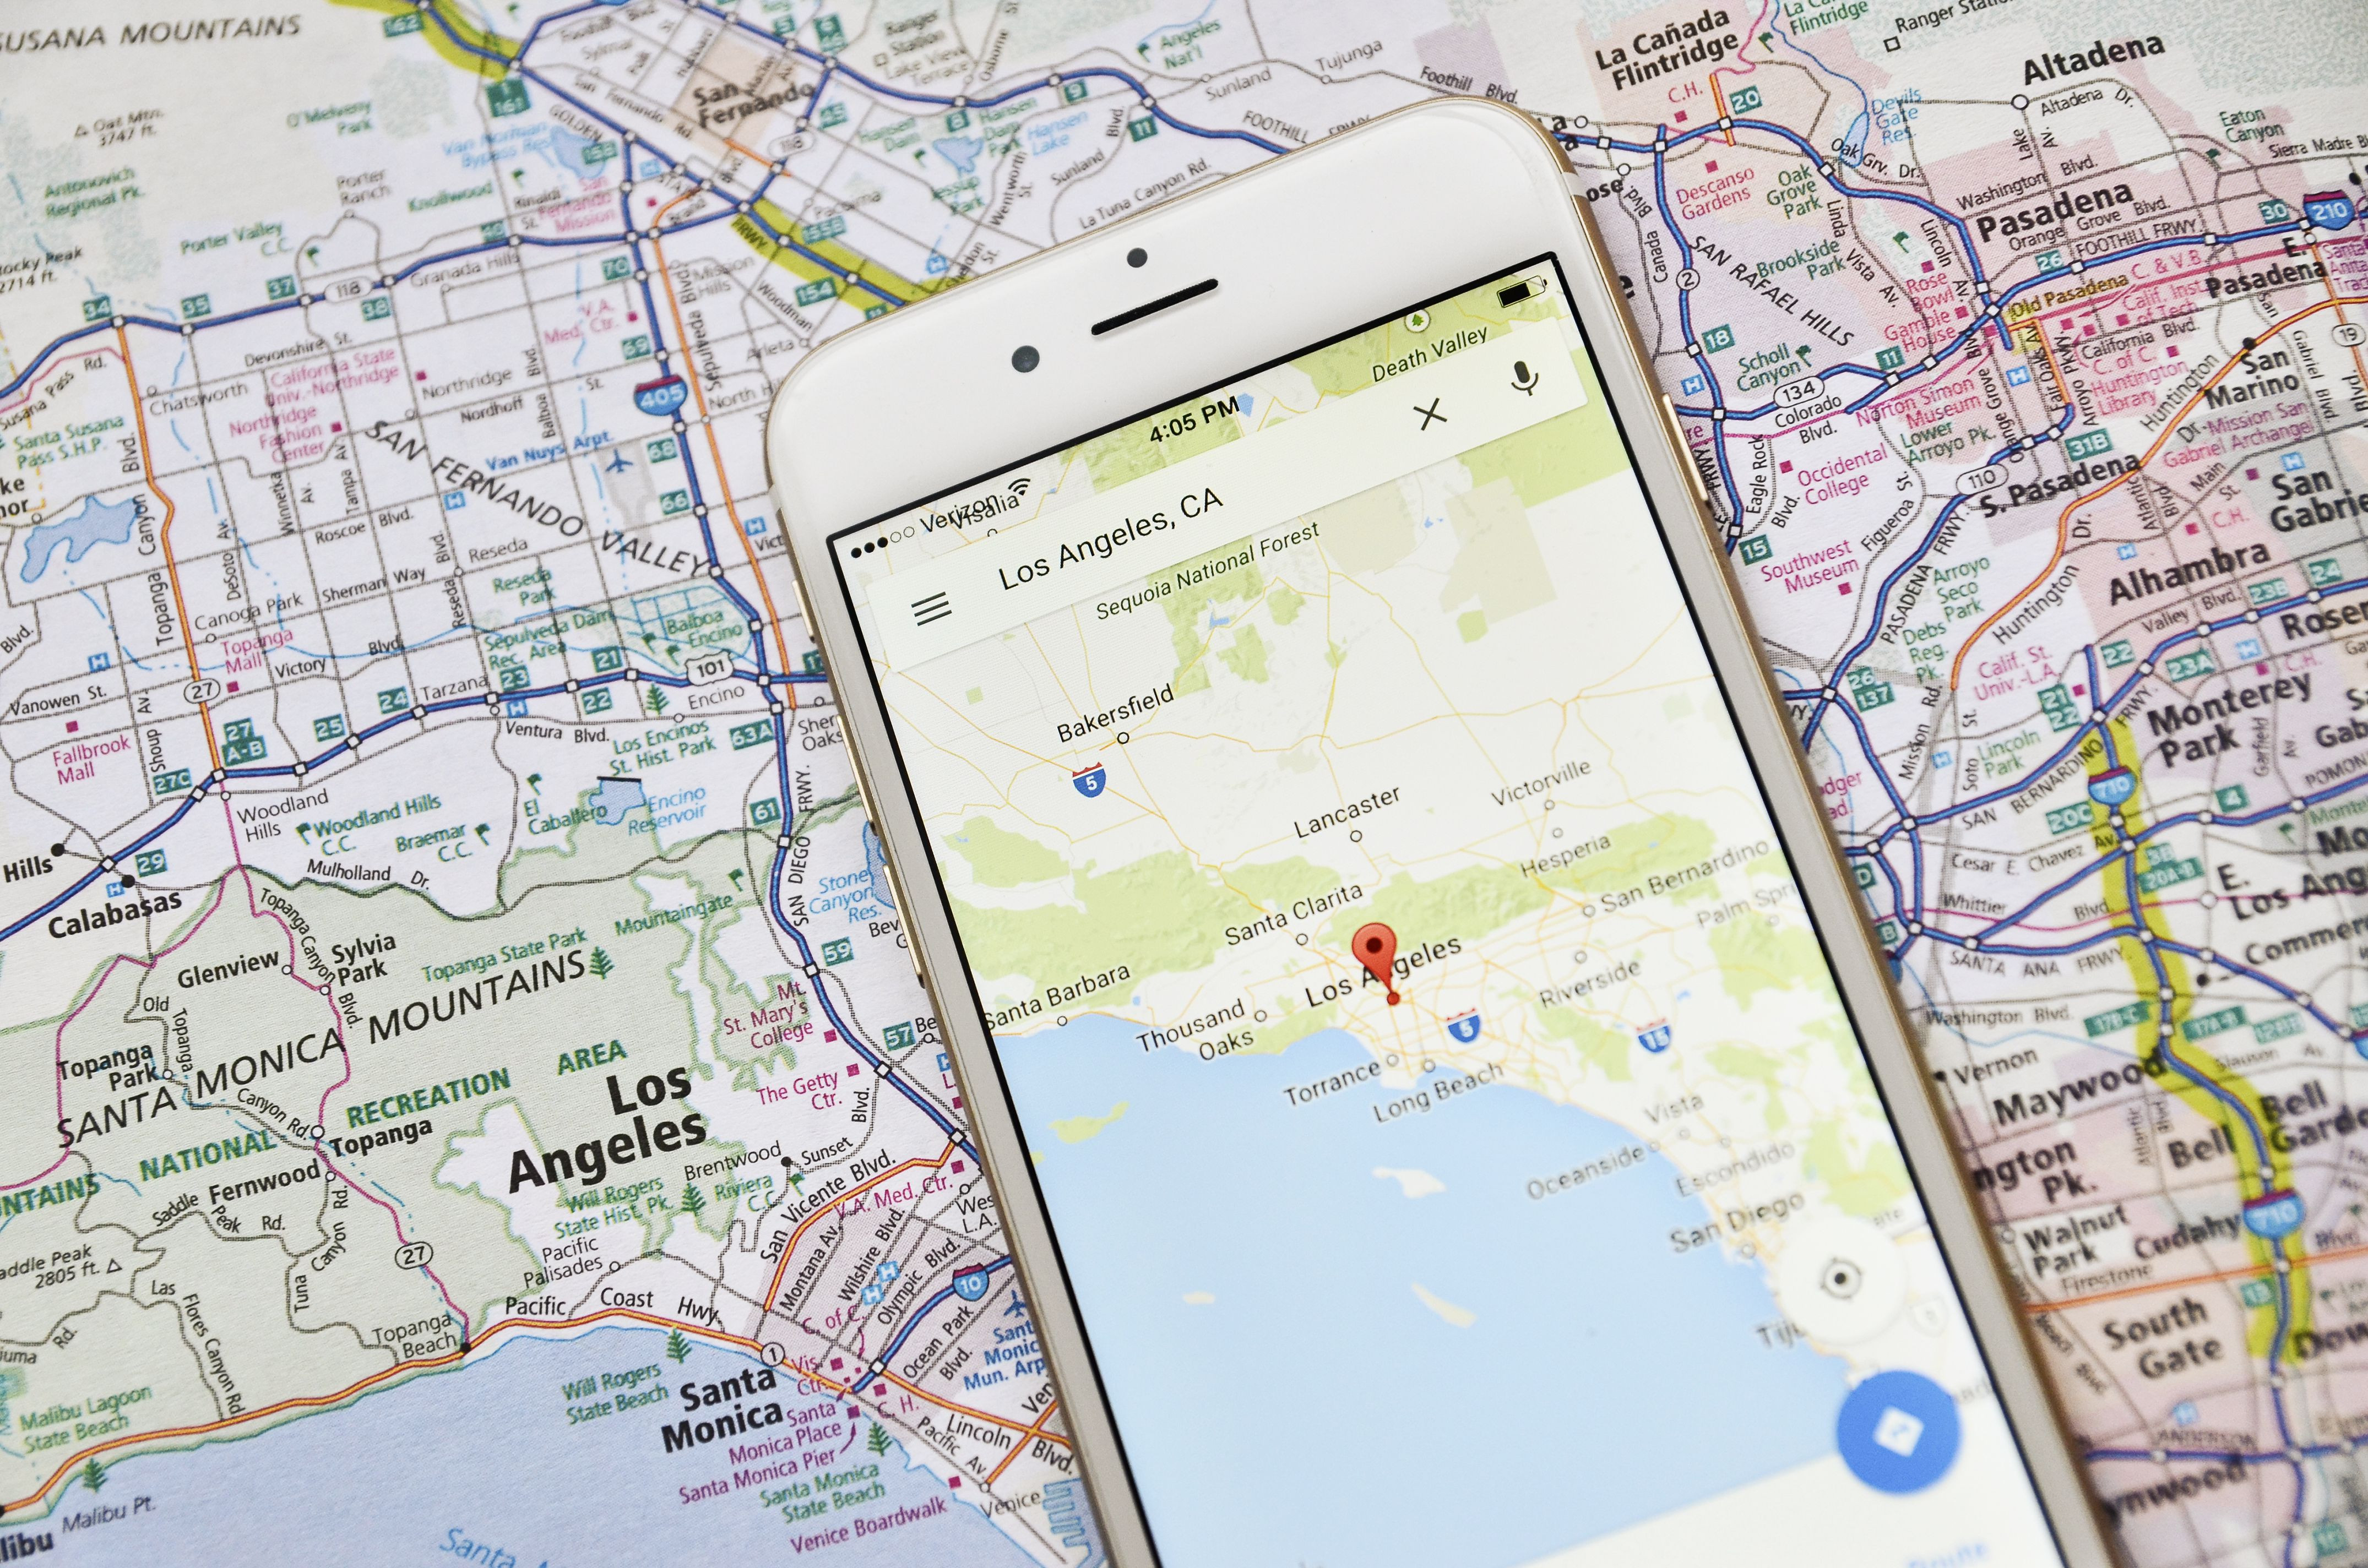 Los Angeles California Google Maps Best Of A Guide To Using Google - Los Angeles California Google Maps